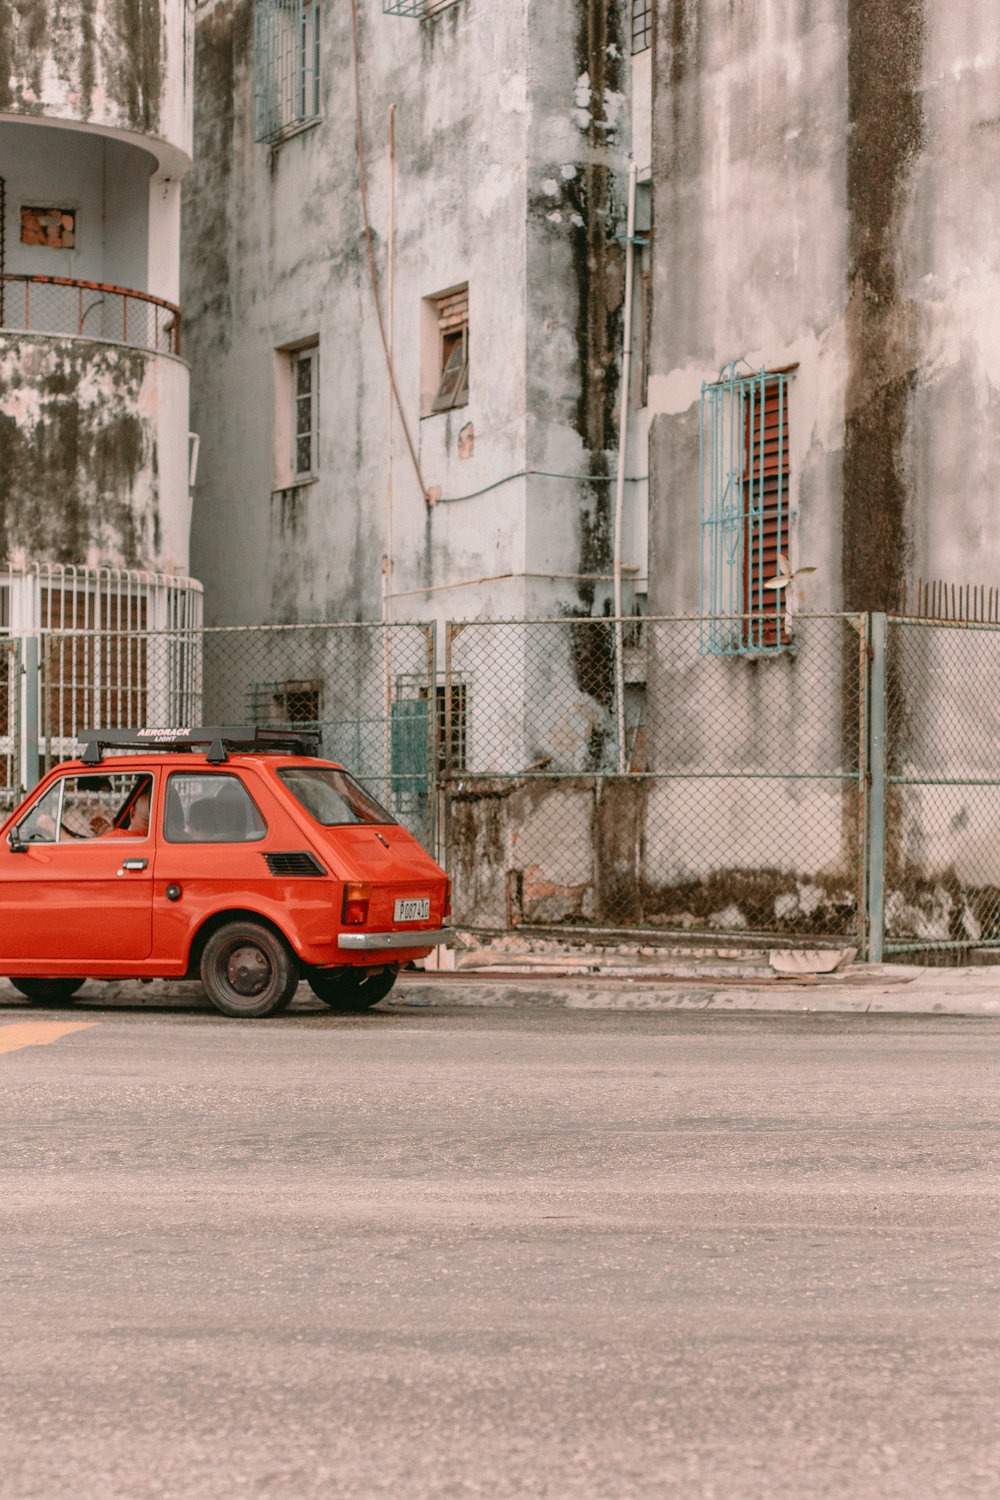 cuba_selects_all_lowres-7276.jpg